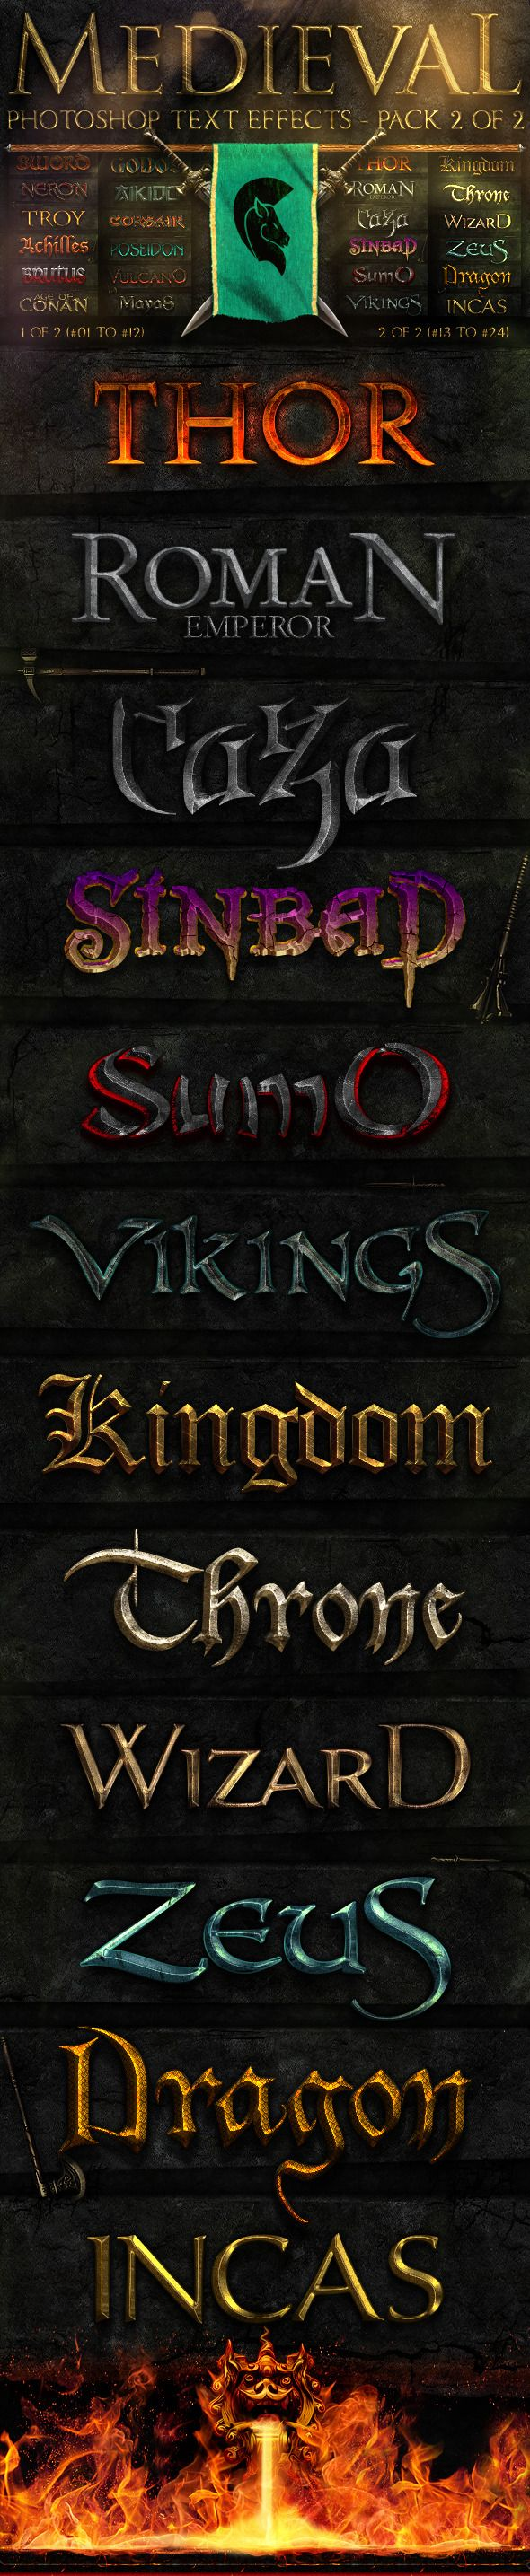 Medieval Photoshop Text Effects 2 of 2 - Text Effects Styles